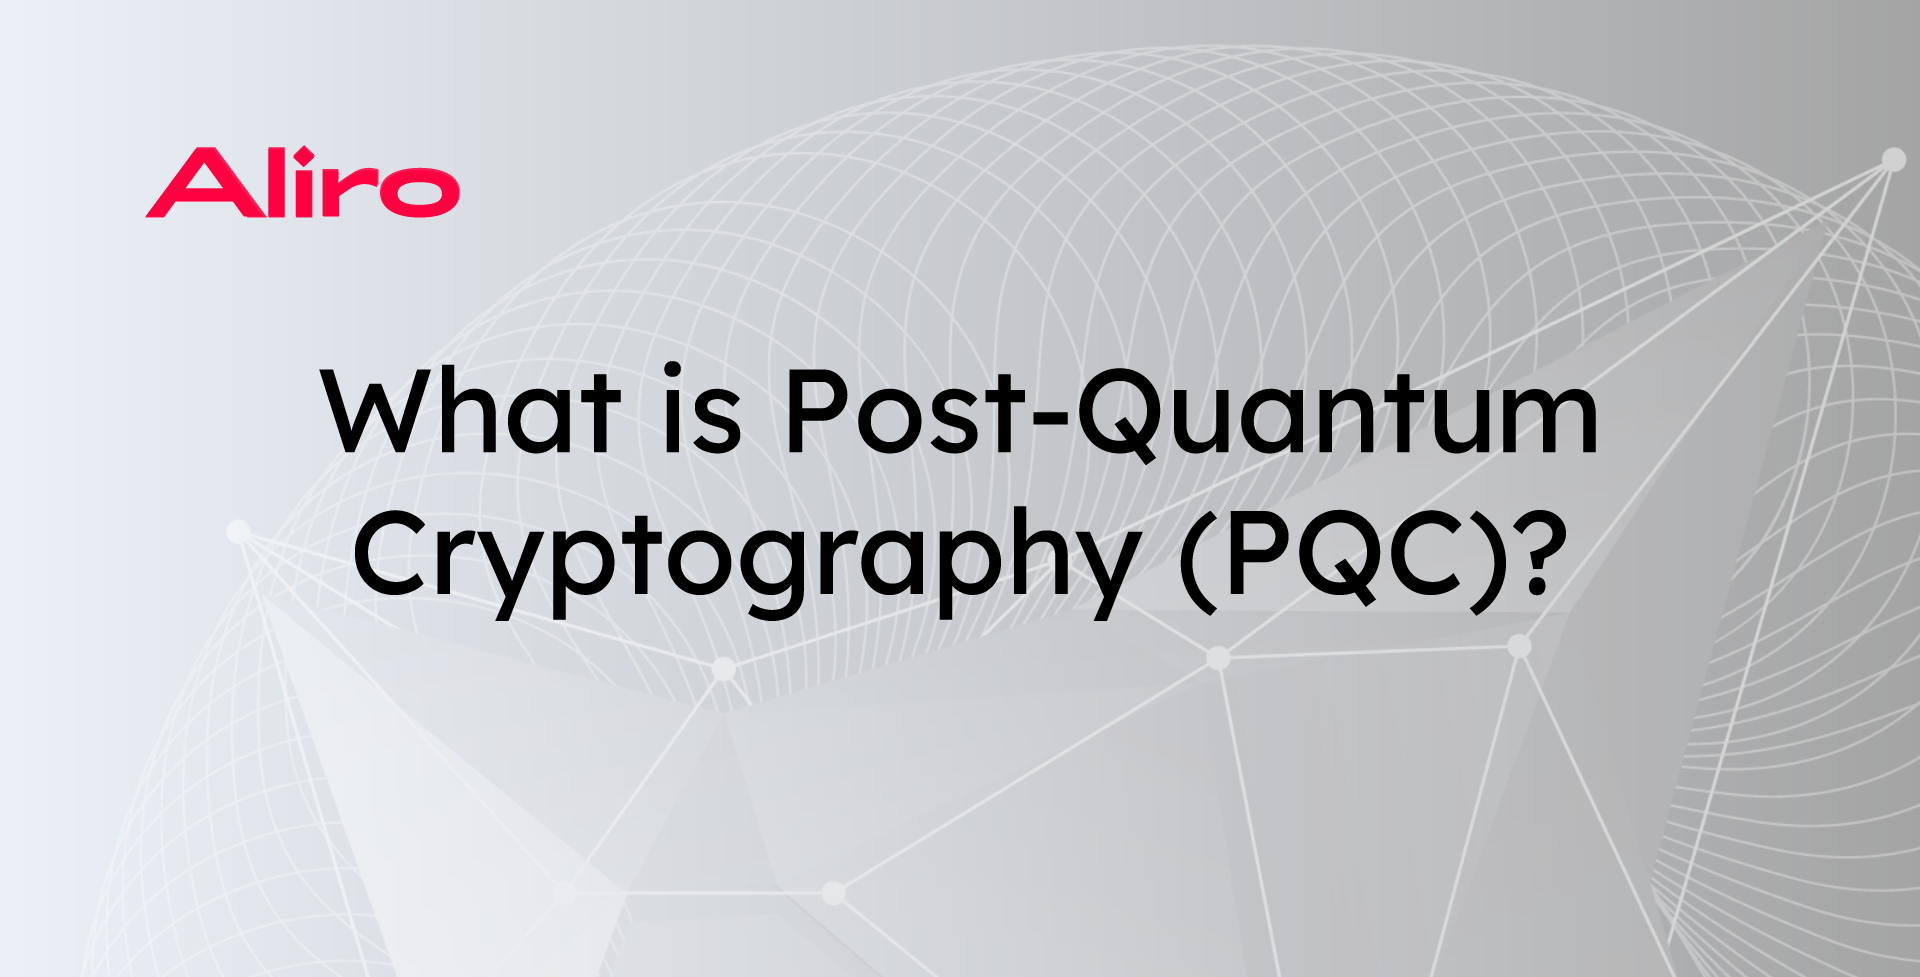 What is Post-Quantum Cryptography (PQC)?